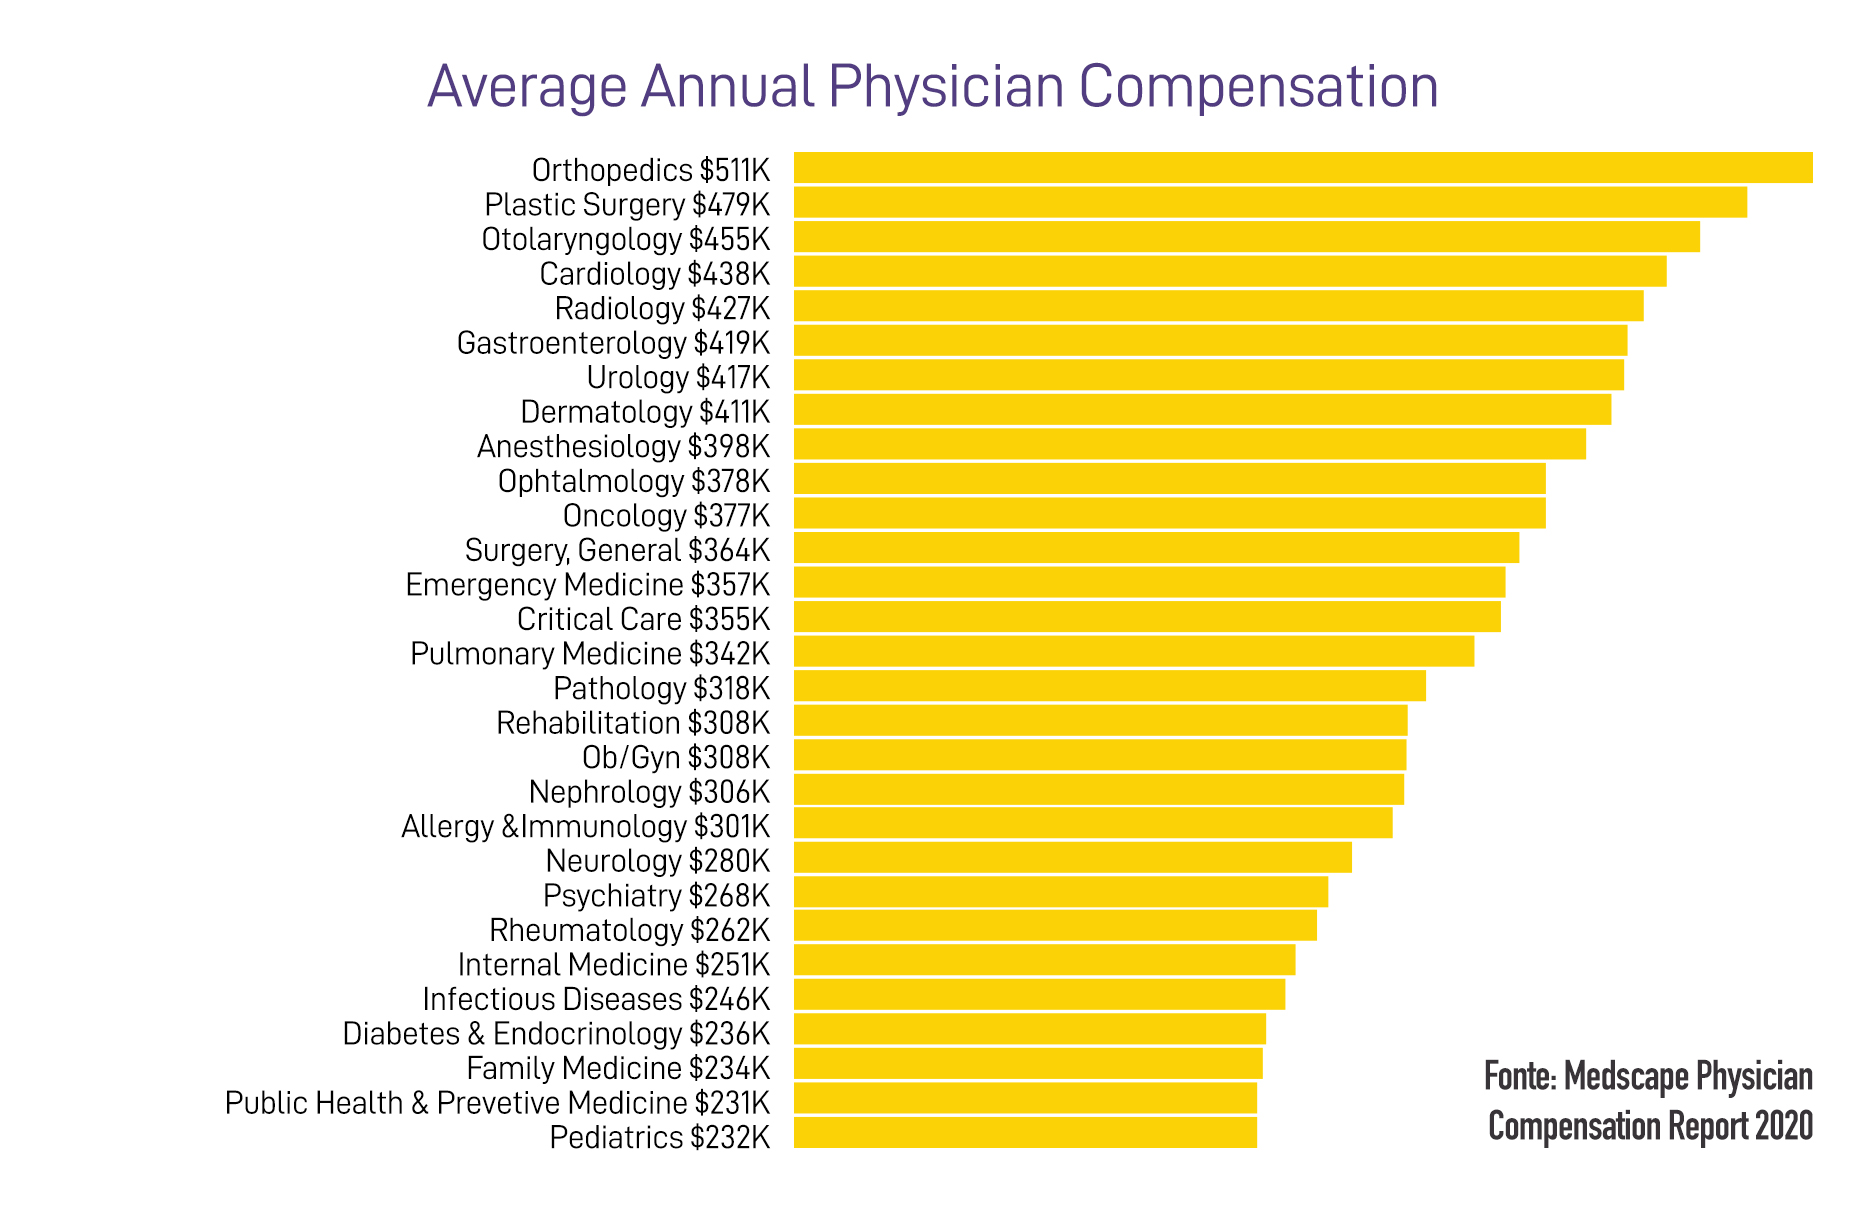 Avarage Anual Physician Compensation